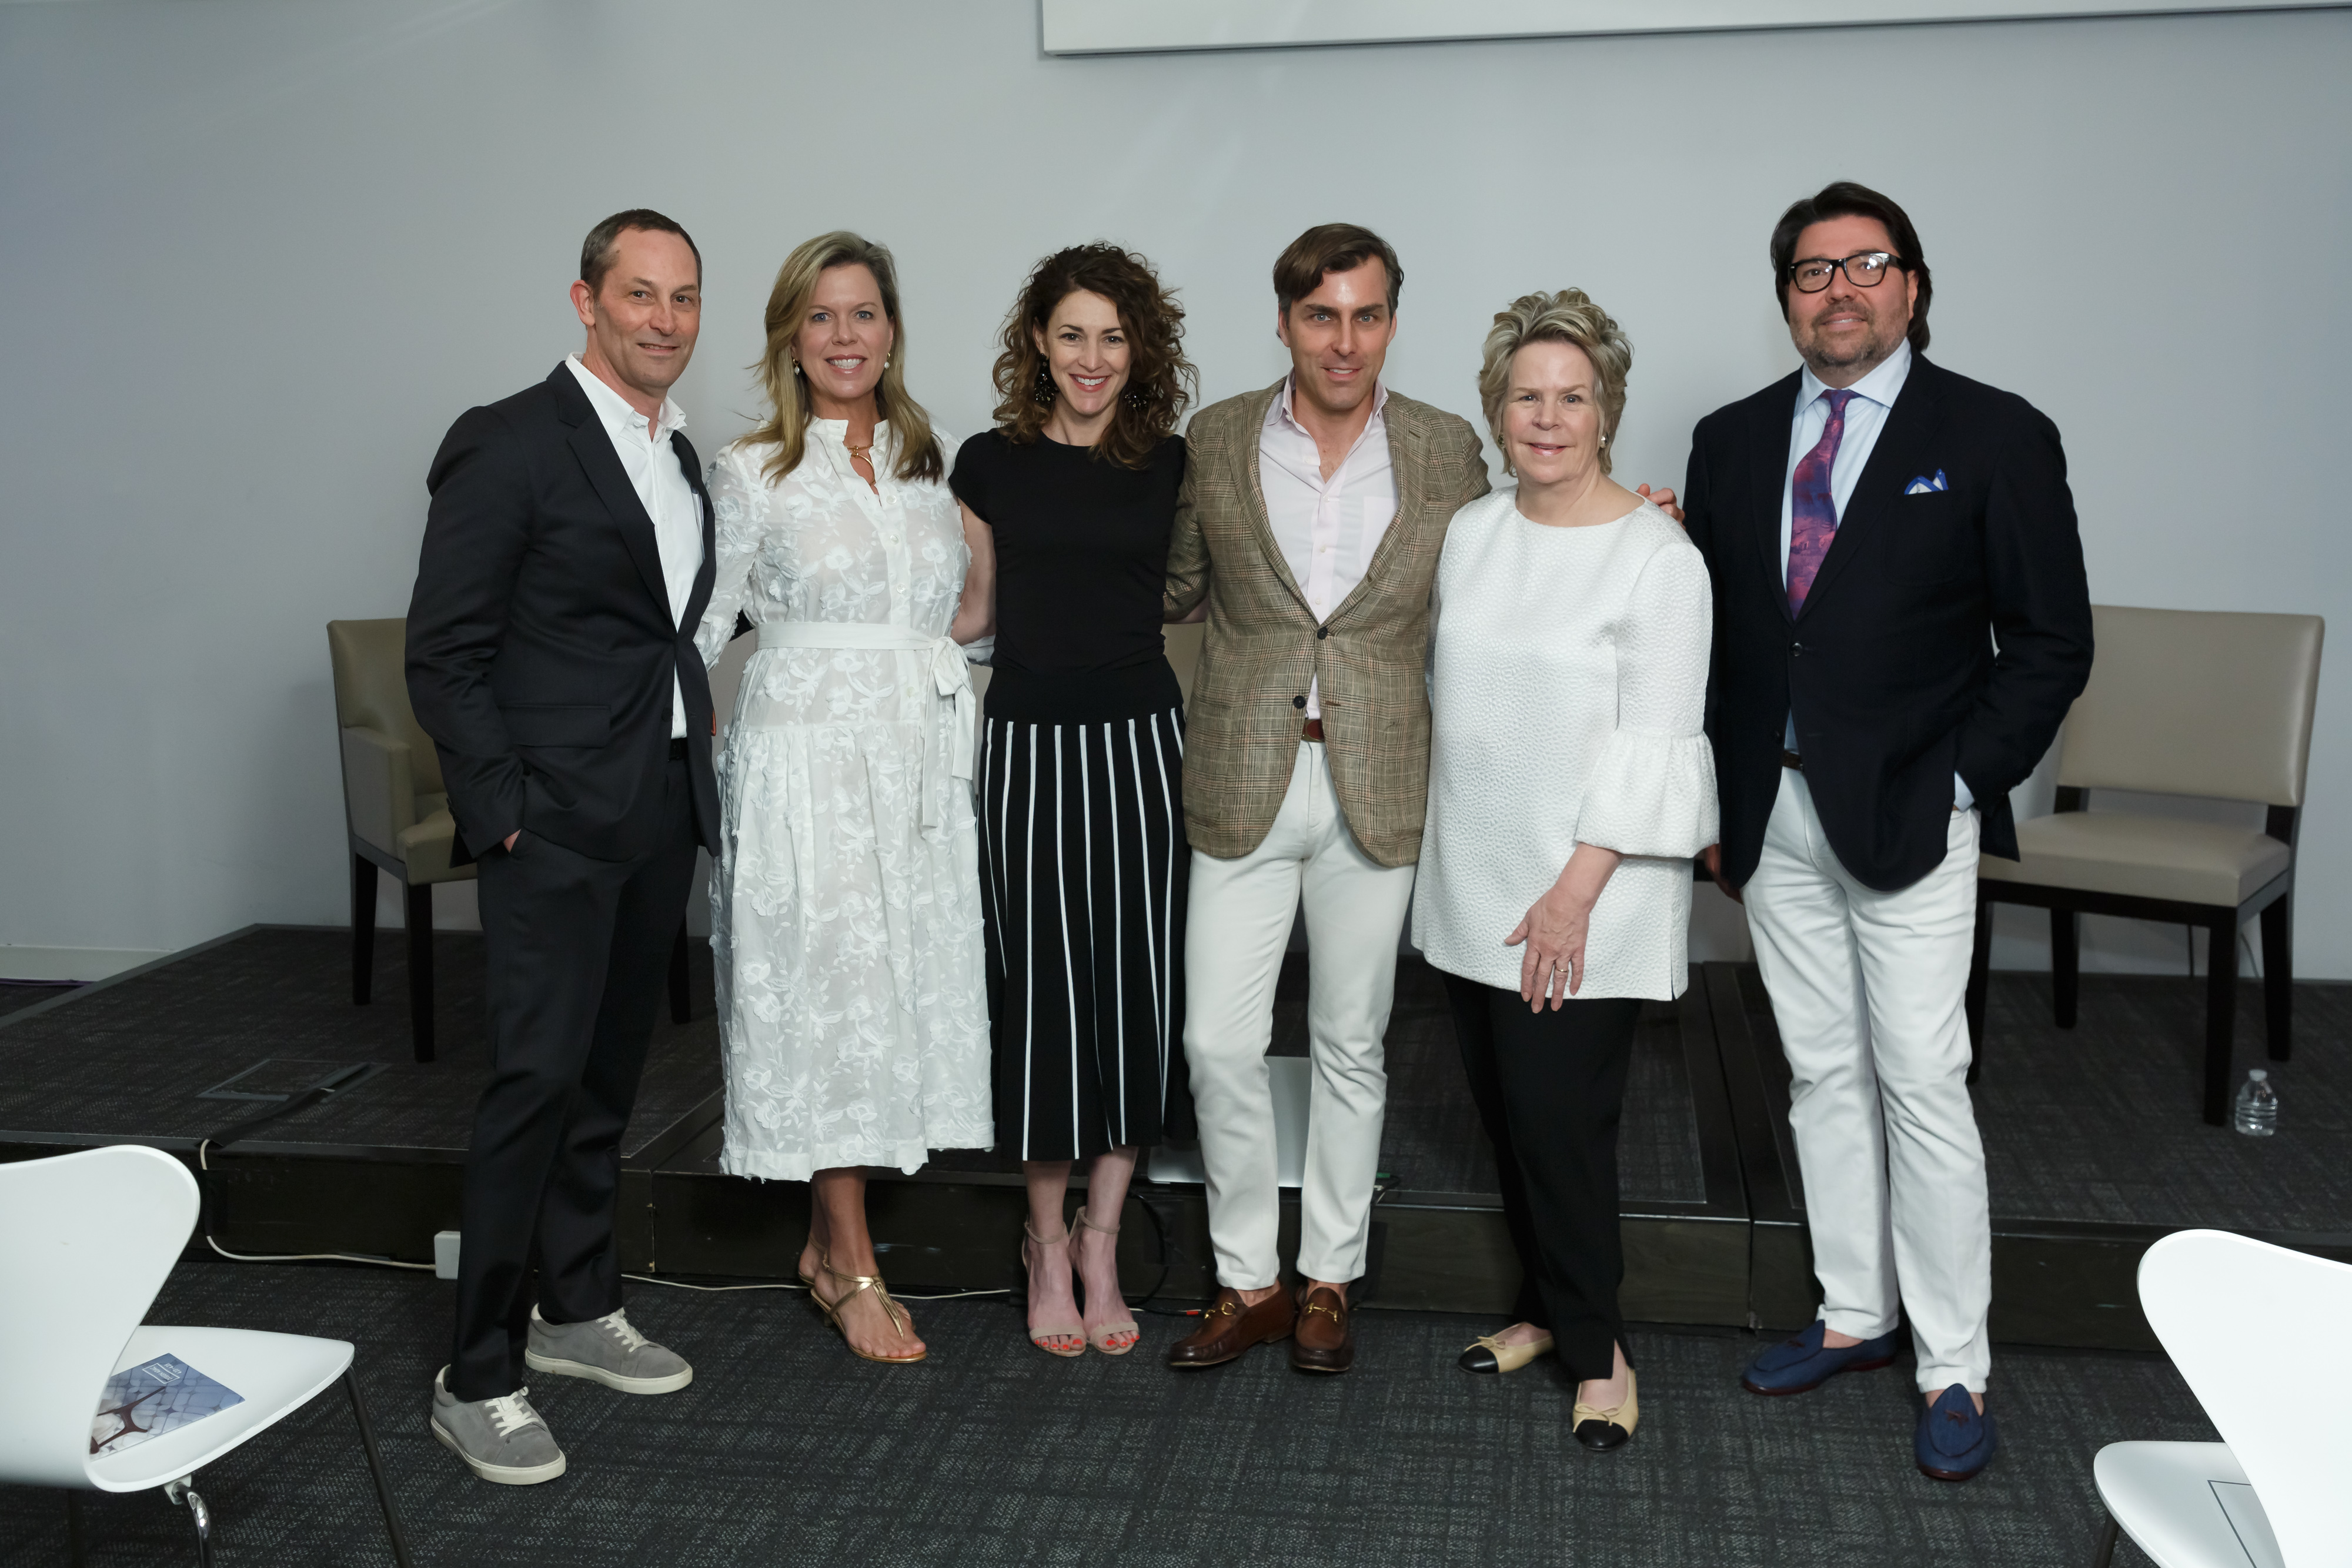 Members of the 'Celebrating a Return to Pretty' panel included David Hamilton, Ashley Whittaker, Ellen McGauley, Matthew Carter, Bunny Williams and Chad Holman.